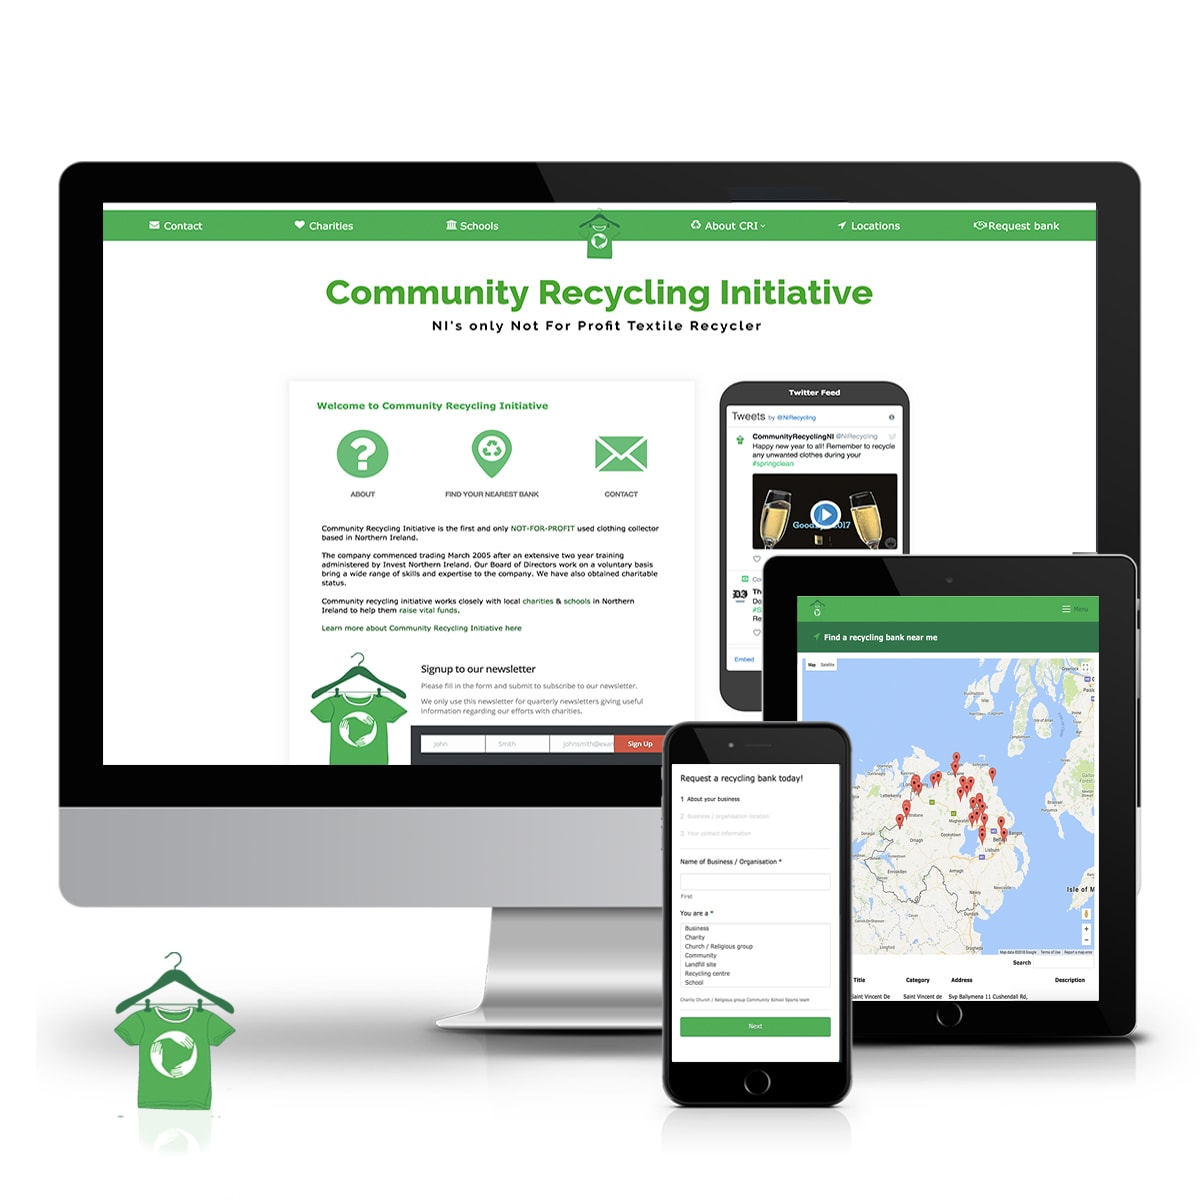 Community Recycling Initiative textile recycling website